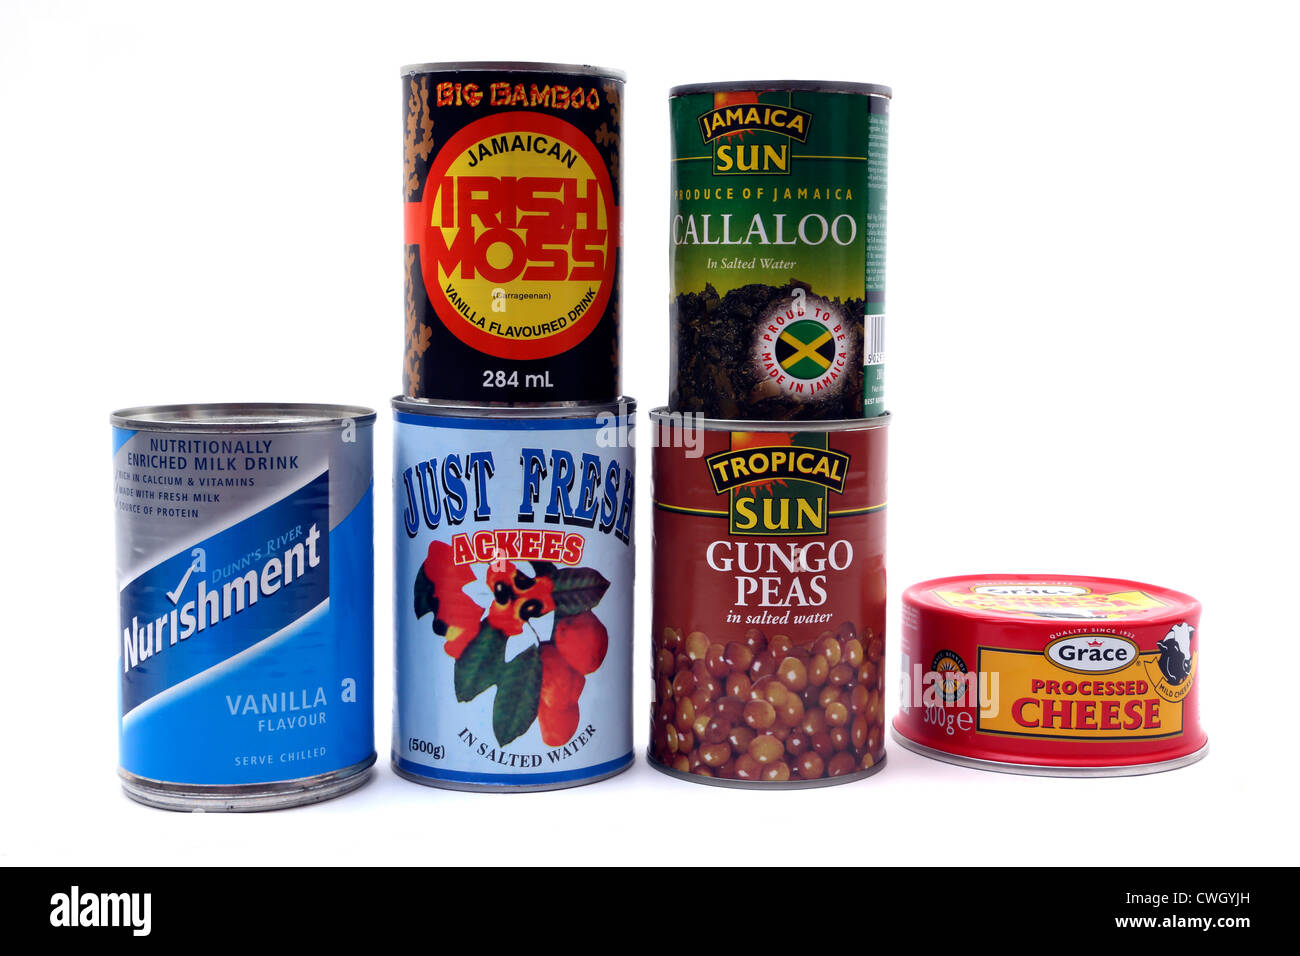 Tins Of Caribbean Food And Drink - Stock Image